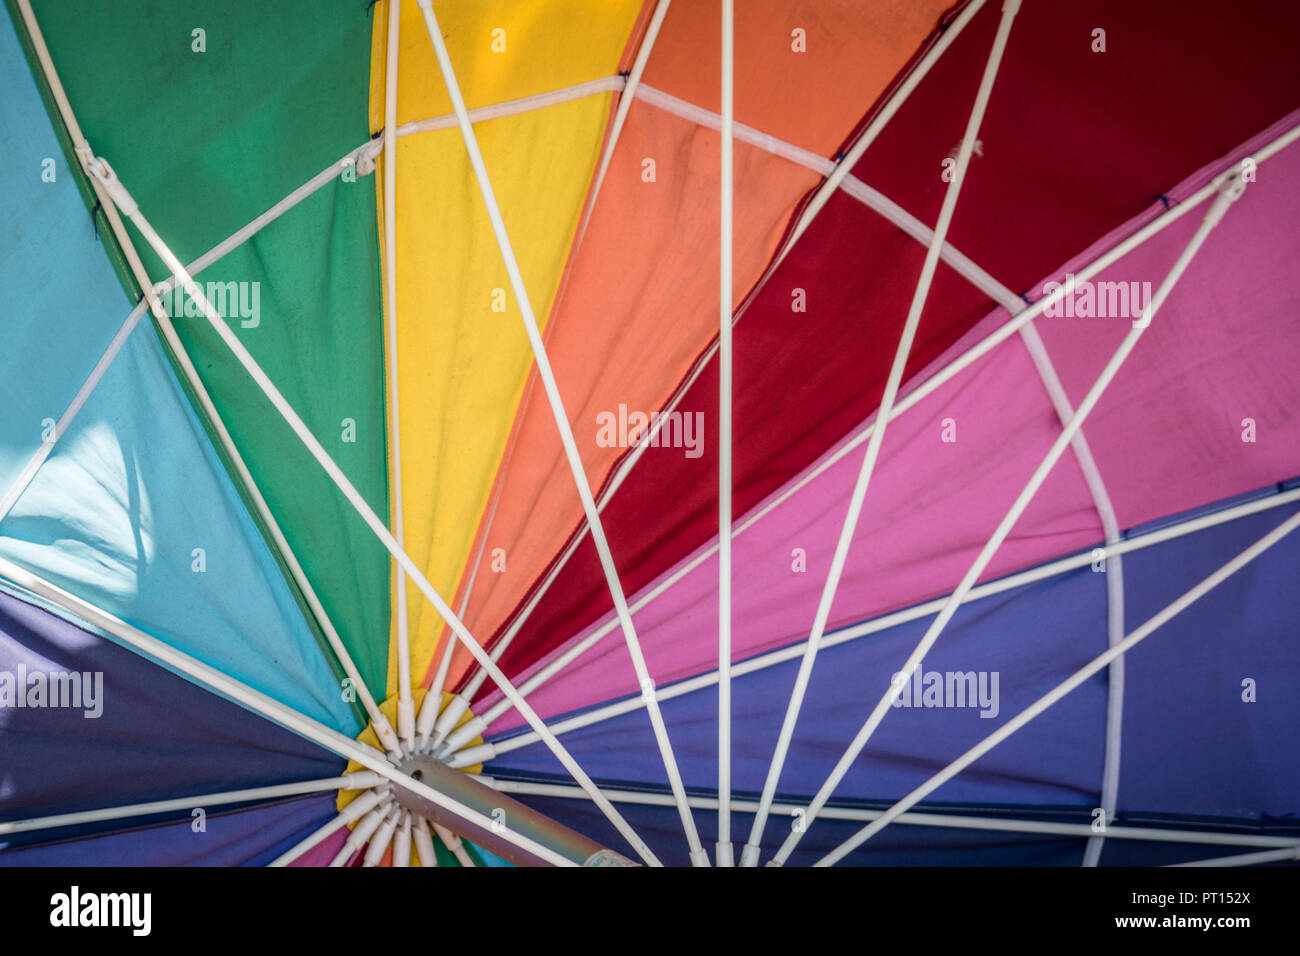 Rainbow colored umbrella, showing the inside of the parasol. Useful for background texture image Stock Photo